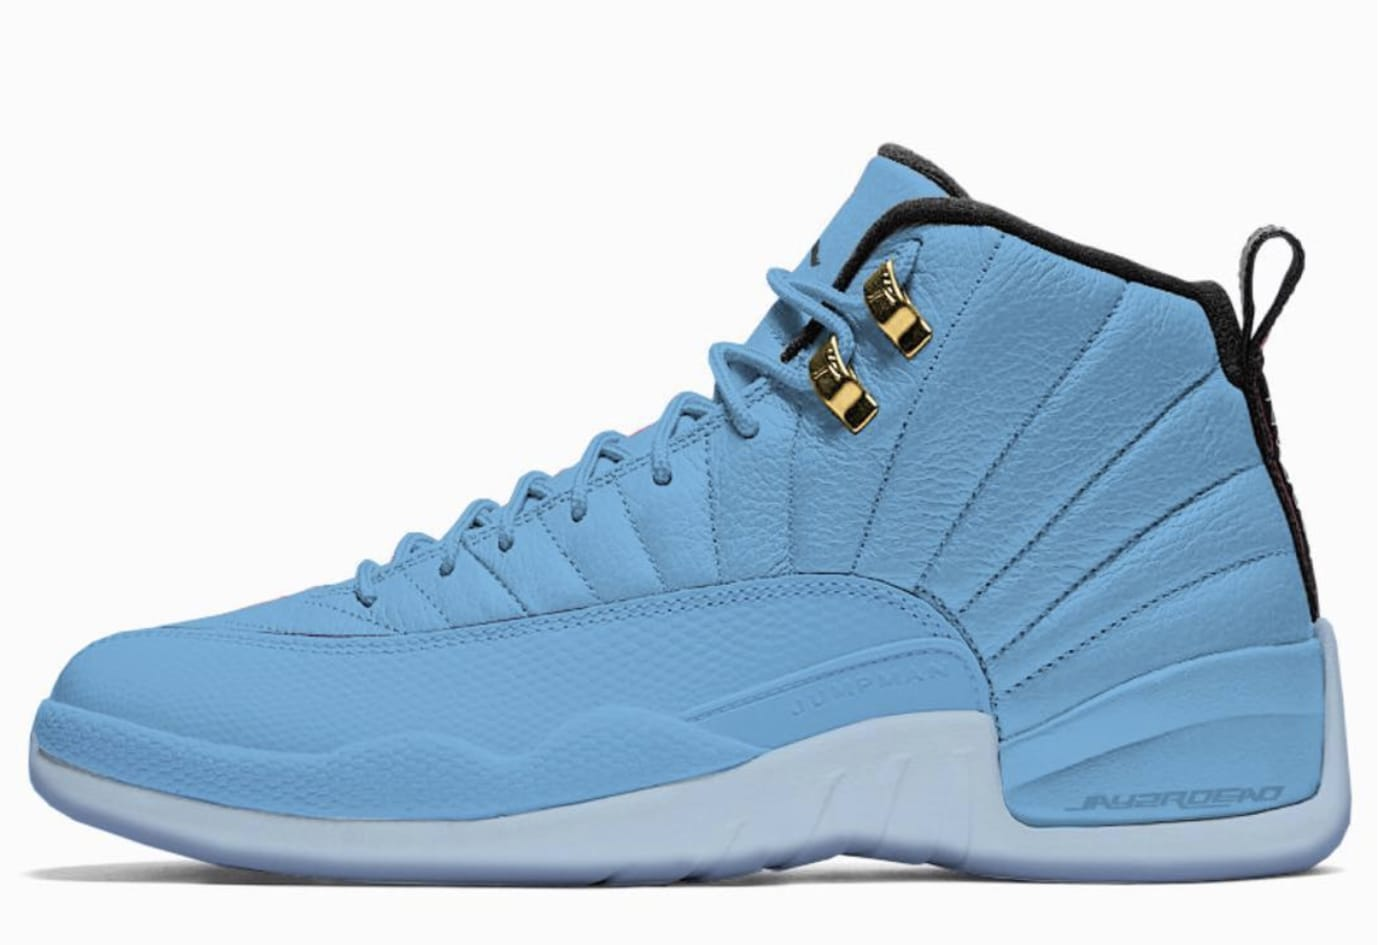 low priced 4be88 48d24 Air Jordan 12 University Blue Metallic Gold-Black 130690-430